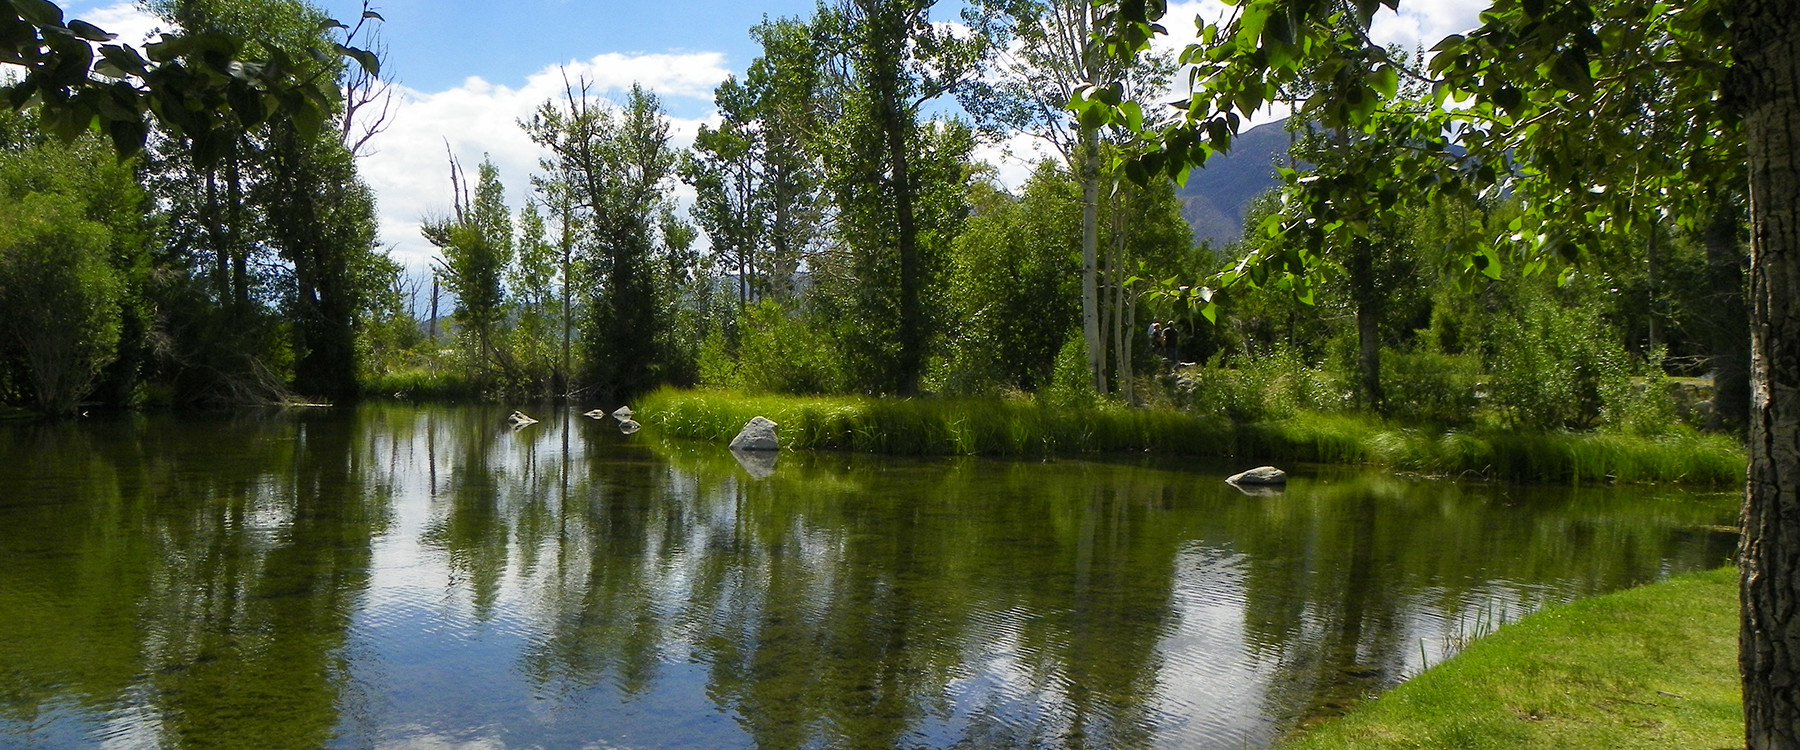 Northern california campgrounds with hookups